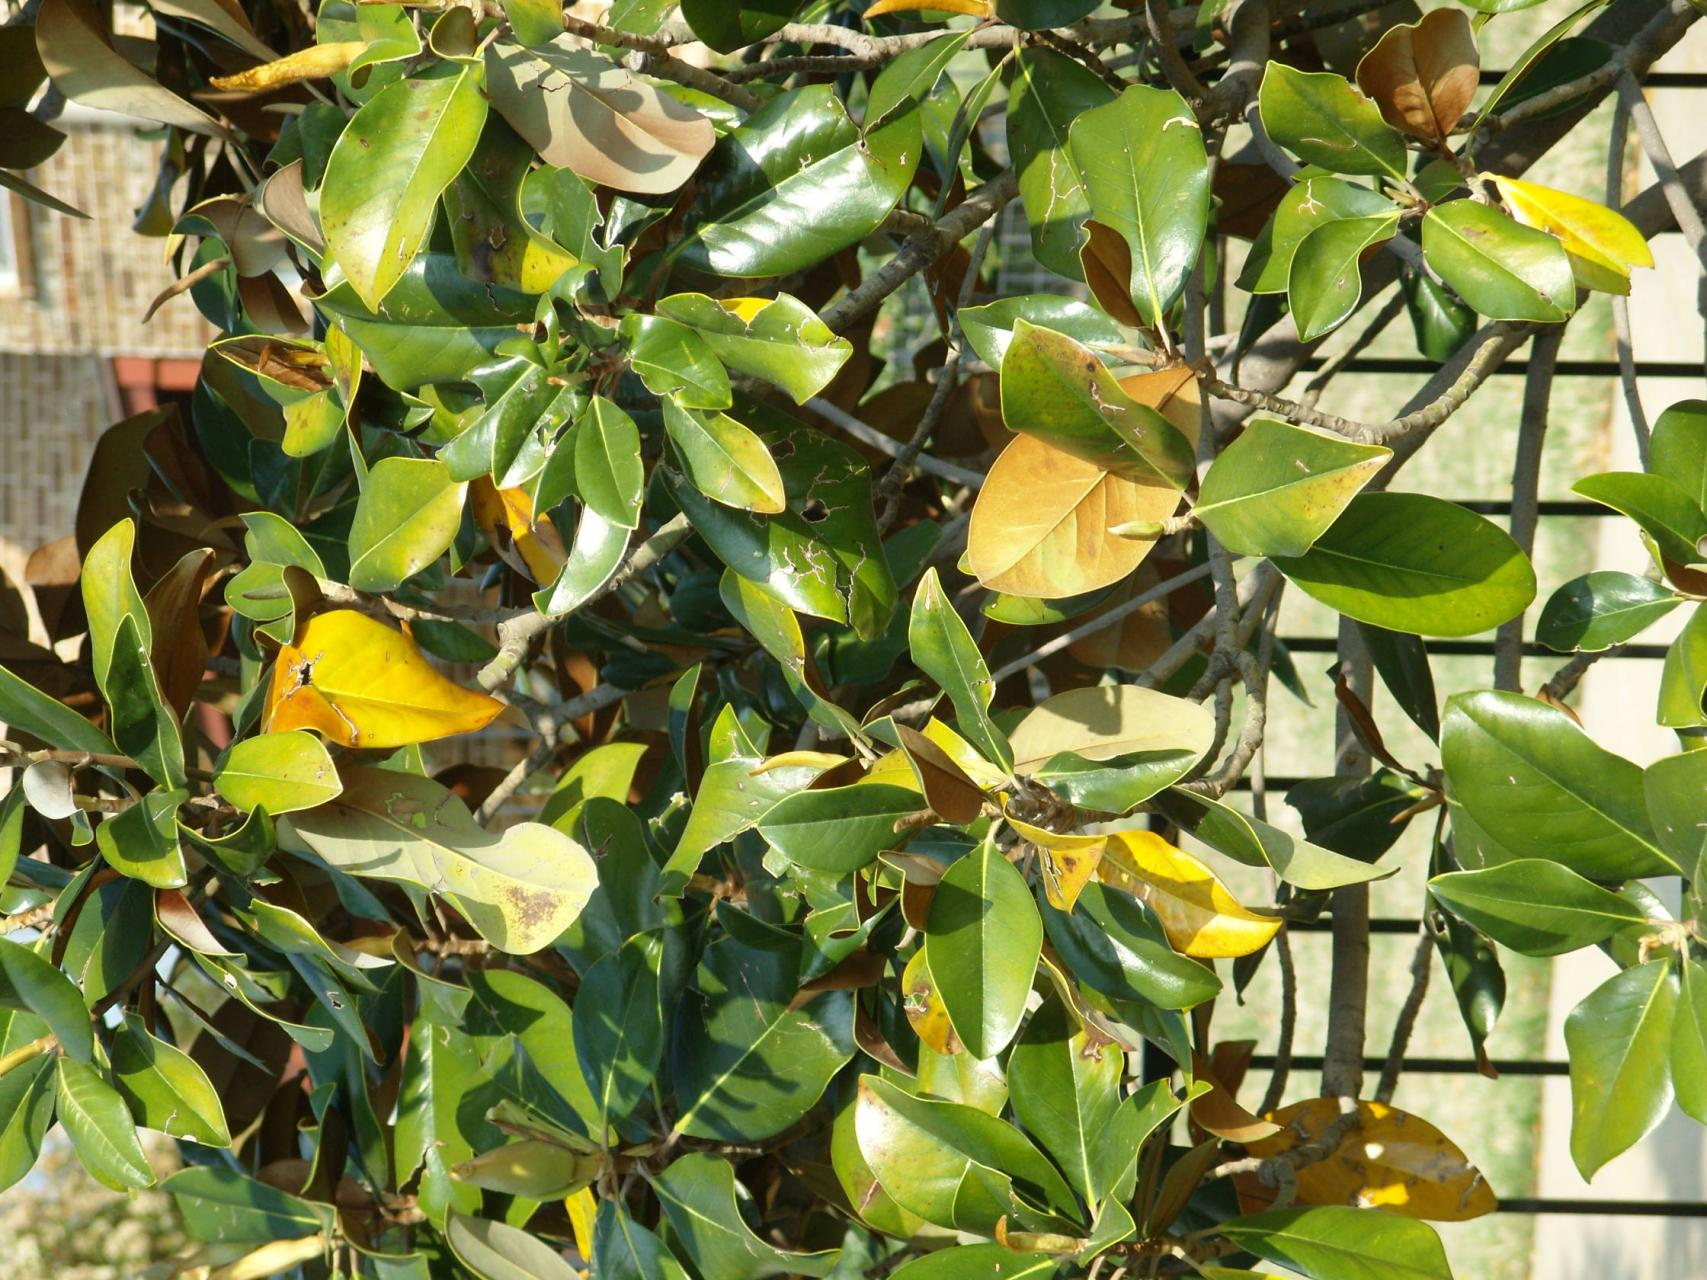 My Southern Magnolia Has Yellow Leaves What S The Cause Dummer Garden Manage Gfinger Es La App De Jardineria Mas Profesional